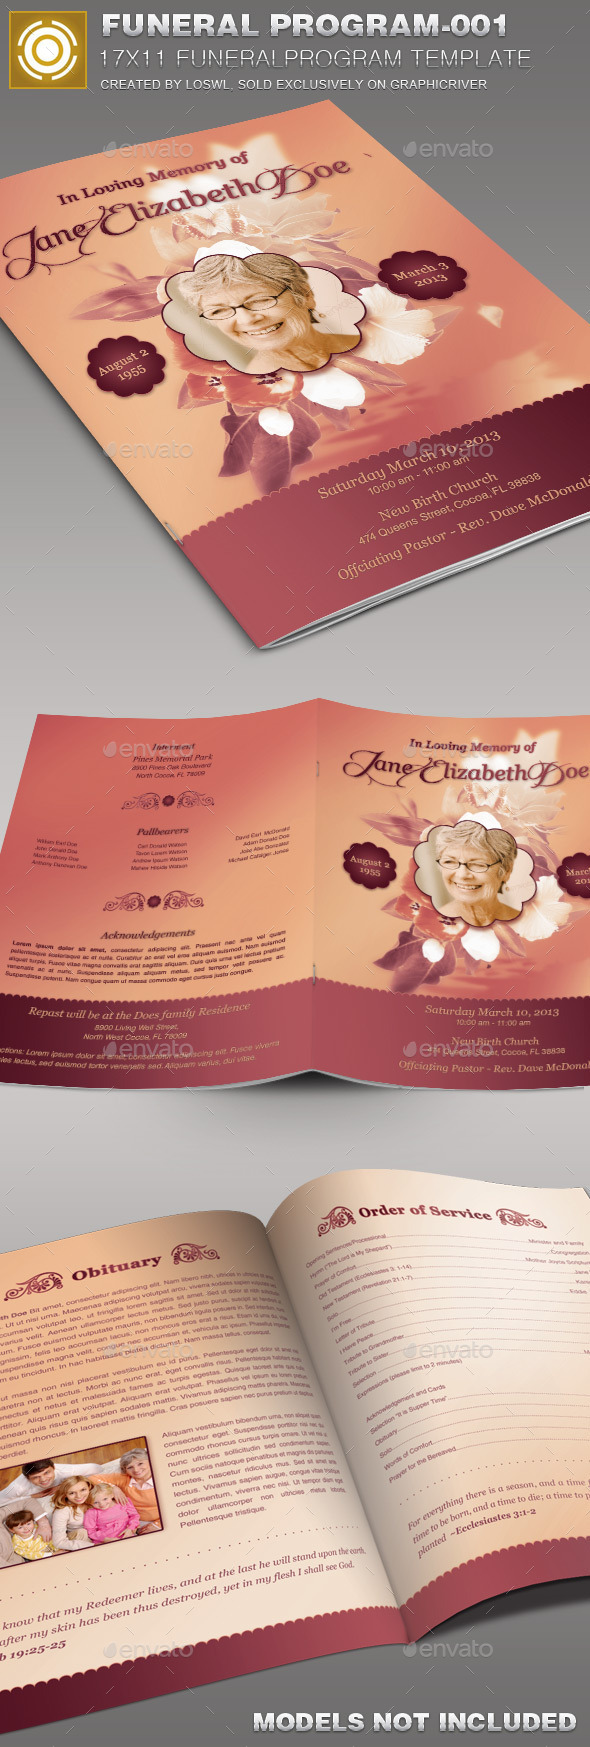 Funeral Program Template-001 - Church Flyers